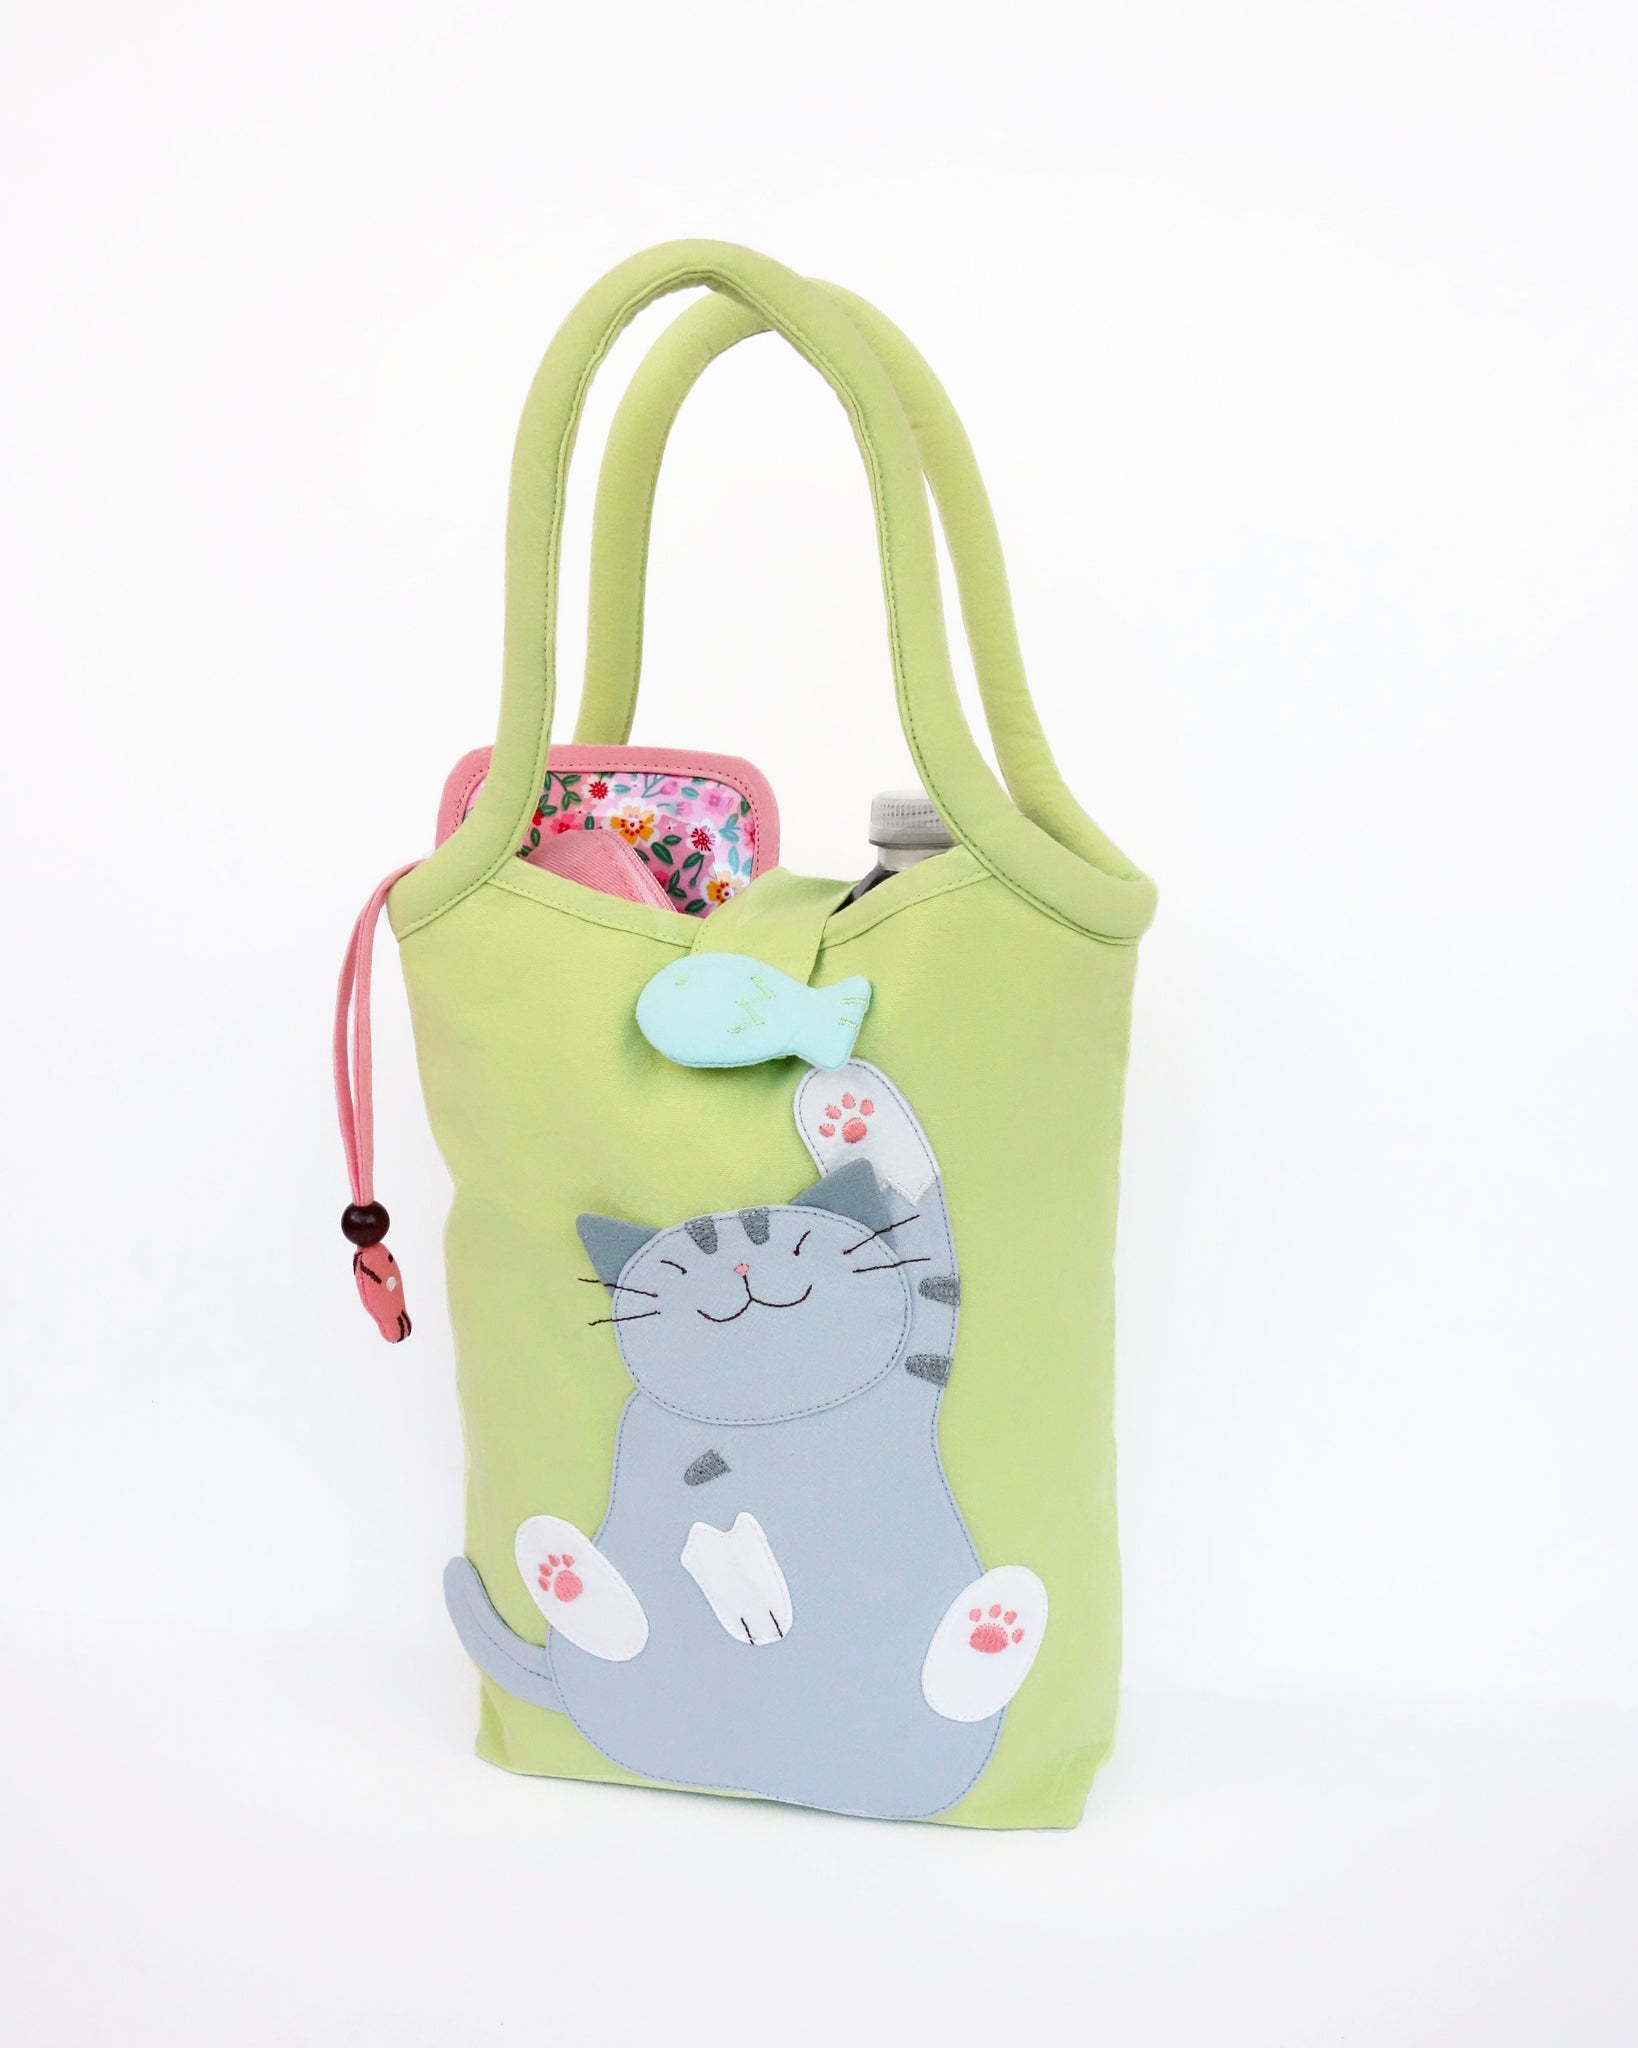 Cat Bottle-Tote in green with cotton interior, nylon lining, cat appliqué, embroidery detail, large main compartment, Velcro flap closure, sturdy double padded handles, squared off bottom for holding books, wallet, water bottle, pencil pouch, or umbrella.